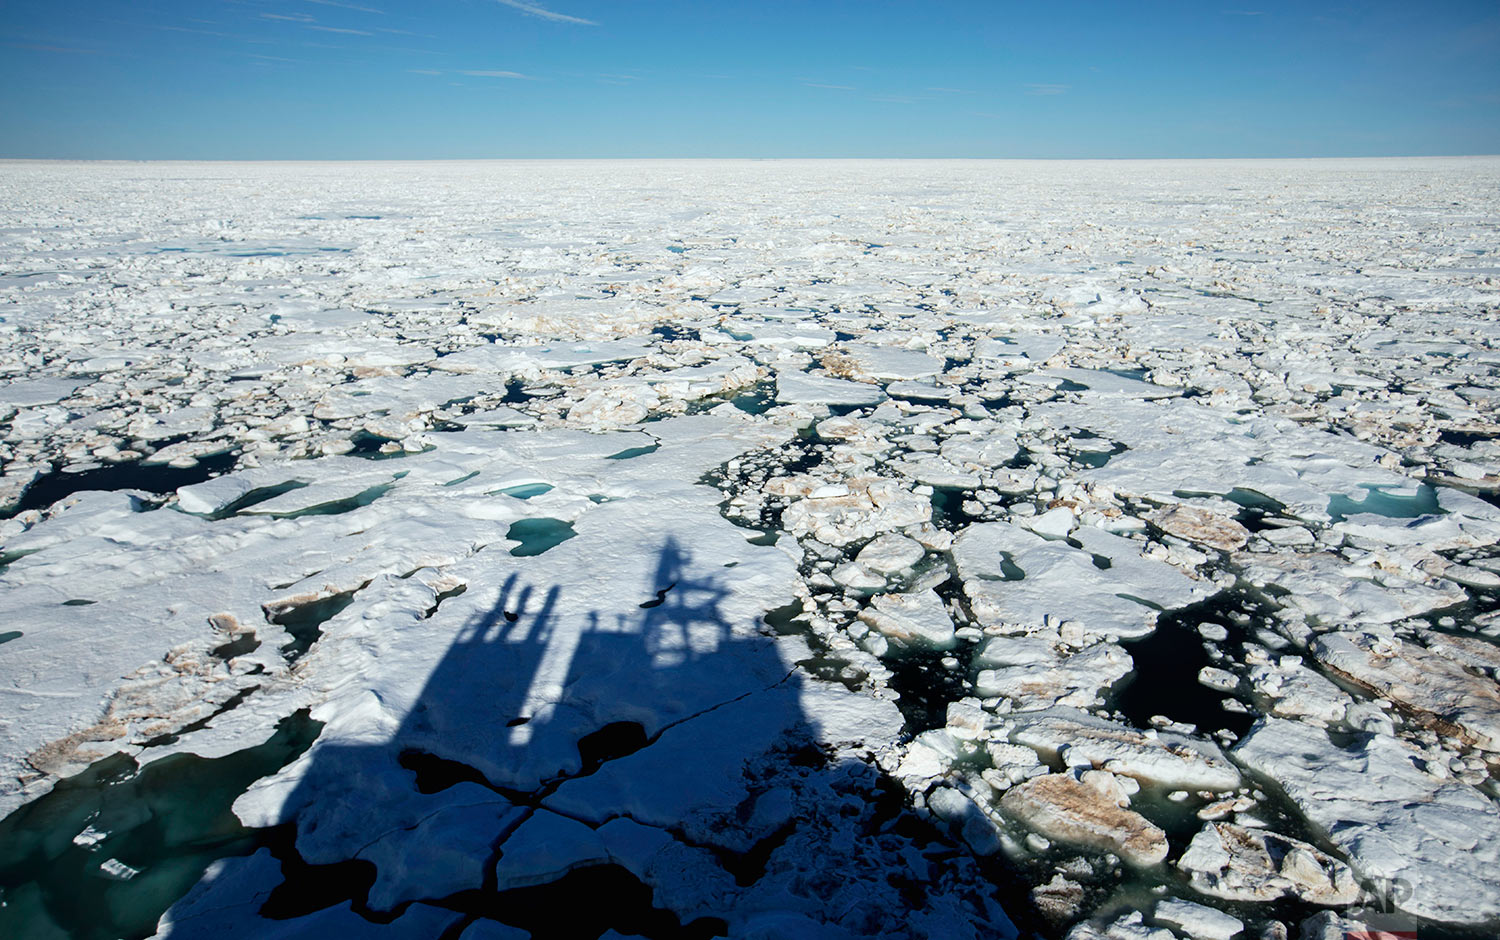 The Finnish icebreaker MSV Nordica casts a shadow on the ice while traversing the Northwest Passage through the Victoria Strait in the Canadian Arctic Archipelago Friday, July 21, 2017. If parts of the planet are becoming like a furnace because of global warming, then the Arctic is best described as the world's air-conditioning unit. The frozen north plays a crucial role in cooling the rest of the planet while reflecting some of the sun's heat back into space. Yet for several decades, satellite pictures have shown a dramatic decline in Arctic sea ice that is already affecting the lives of humans and animals in the region. Experts predict that the impact of melting sea ice will be felt across the northern hemisphere, altering ocean currents and causing freak weather as far south as Florida or France. (AP Photo/David Goldman)